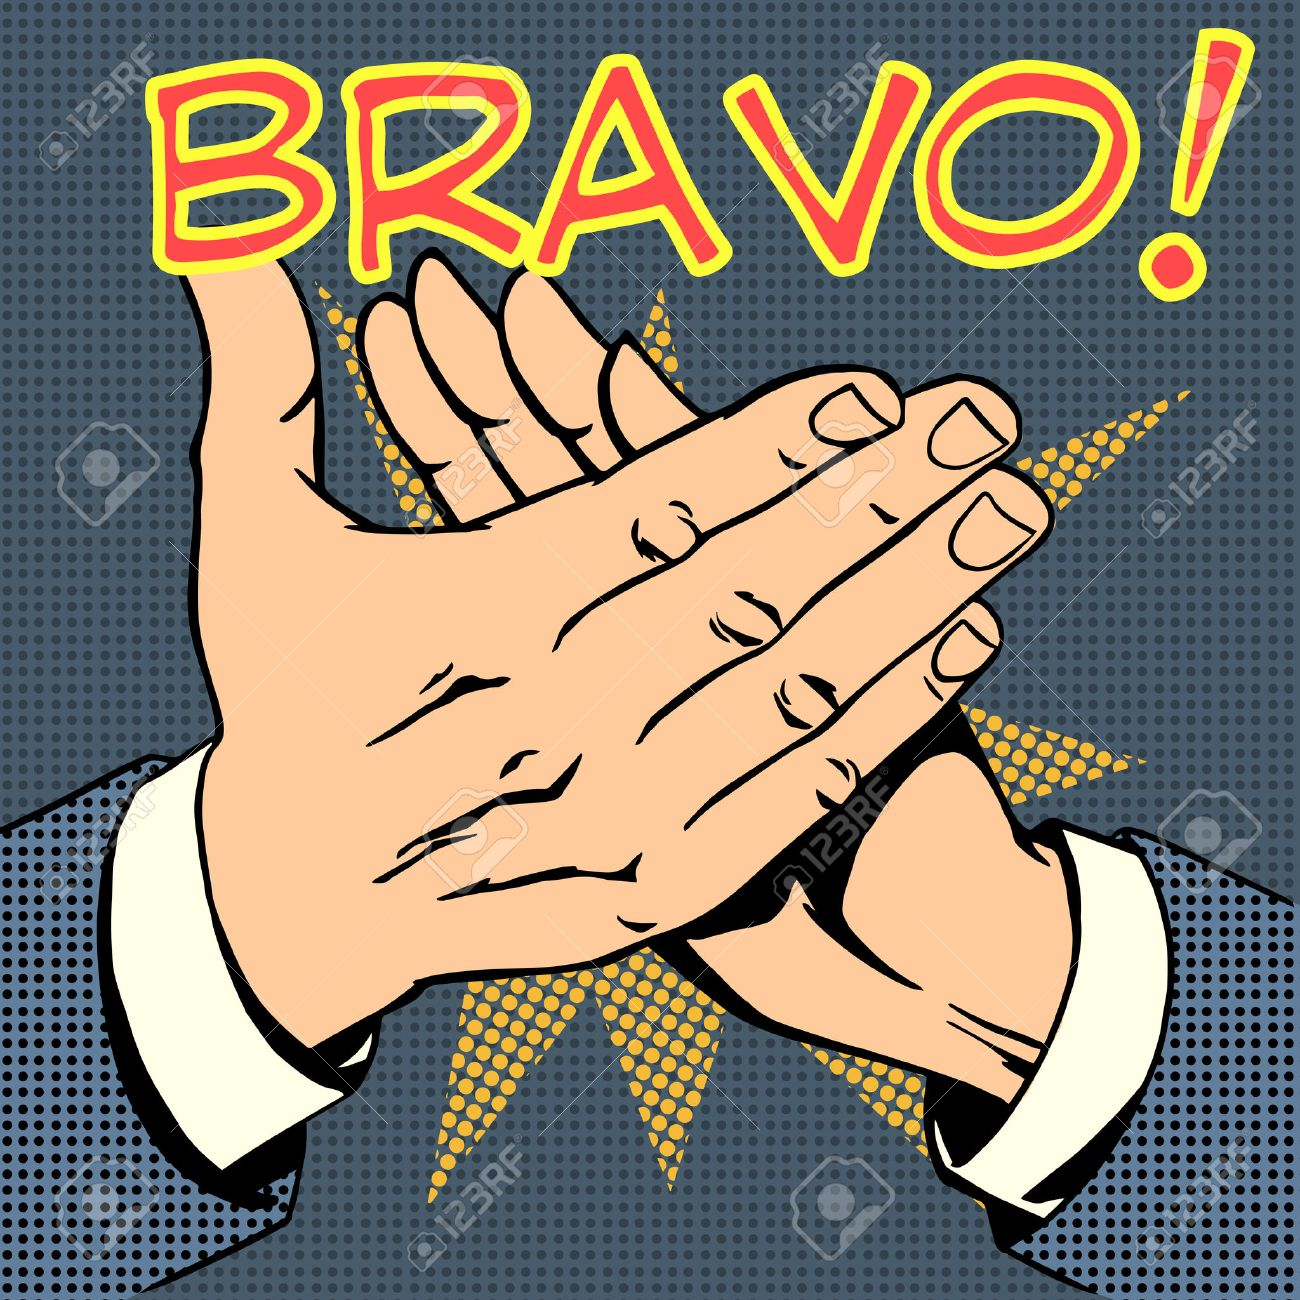 Image Bravo hands palm applause success text bravo retro style pop art royalty